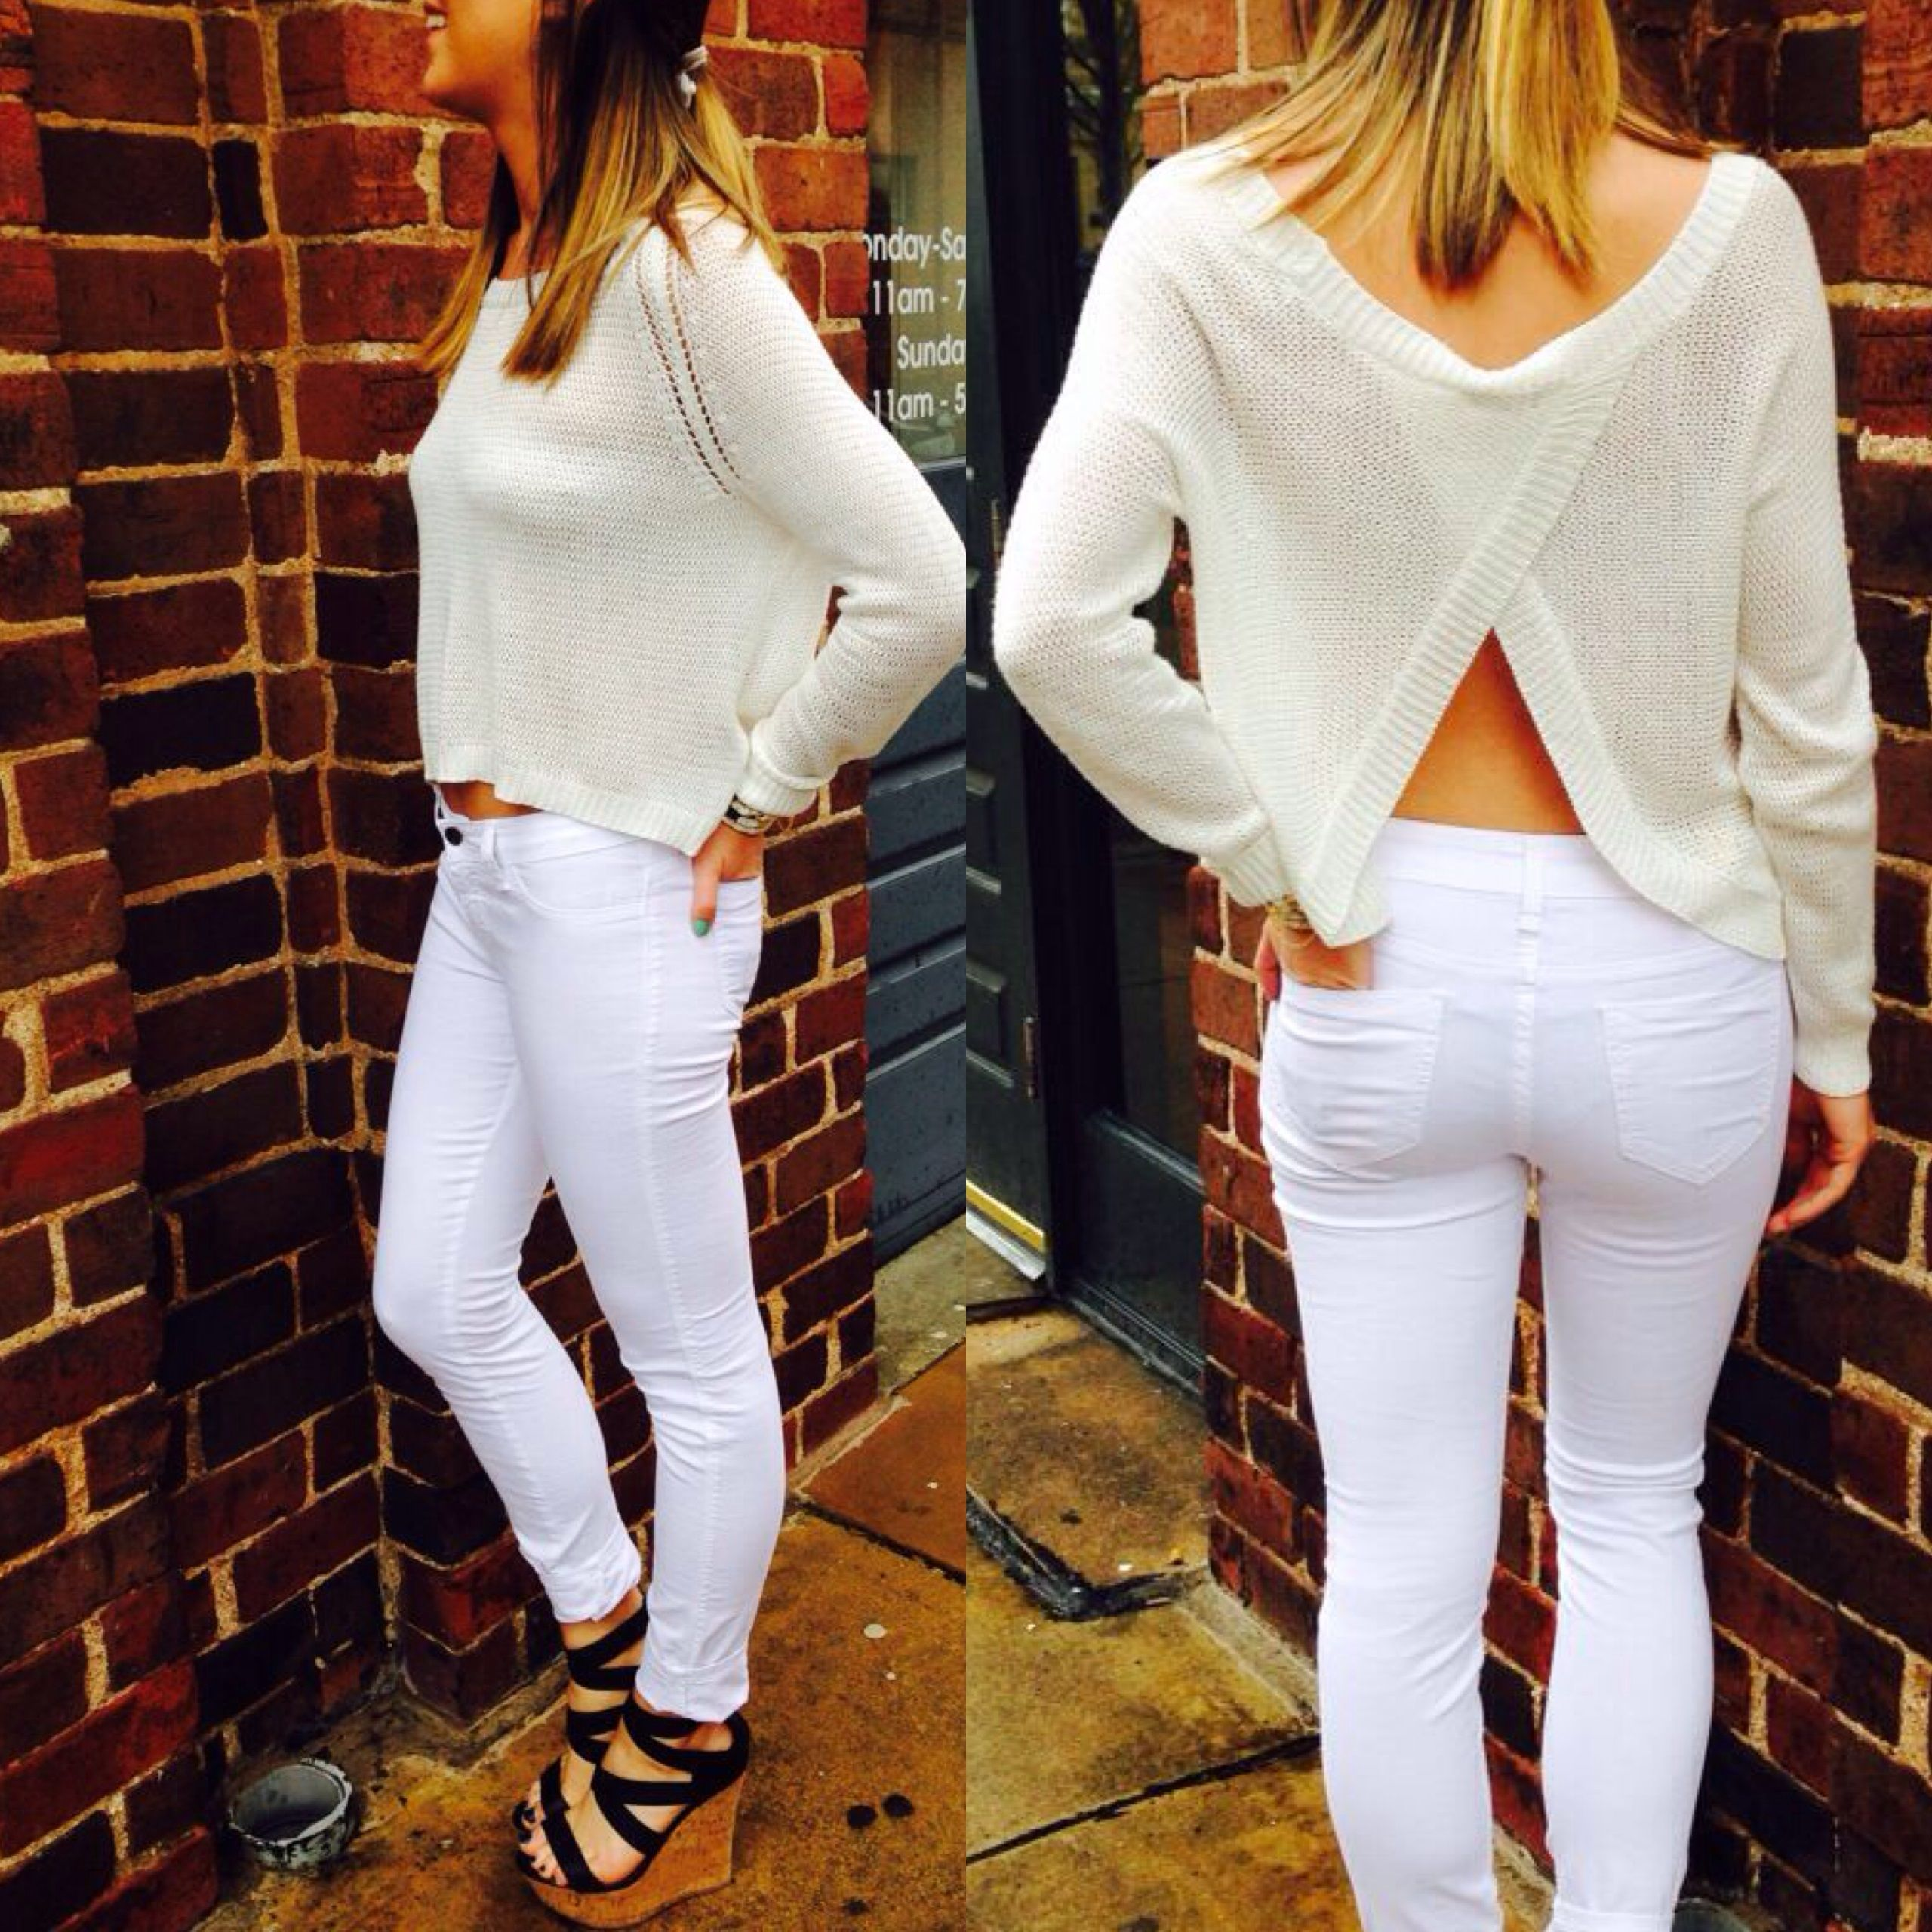 This Pinterest inspired all white look is great for Spring! Our open-back cropped sweater paired with white denim and wedges is perfect for shopping & lunch downtown! Or throw it on with some high-wasted shorts for a more casual look. Either way this look is guaranteed to turn heads! Shop the entire outfit in store or call to order 706-363-1322 #allwhiteeveryhing #whiteonwhite